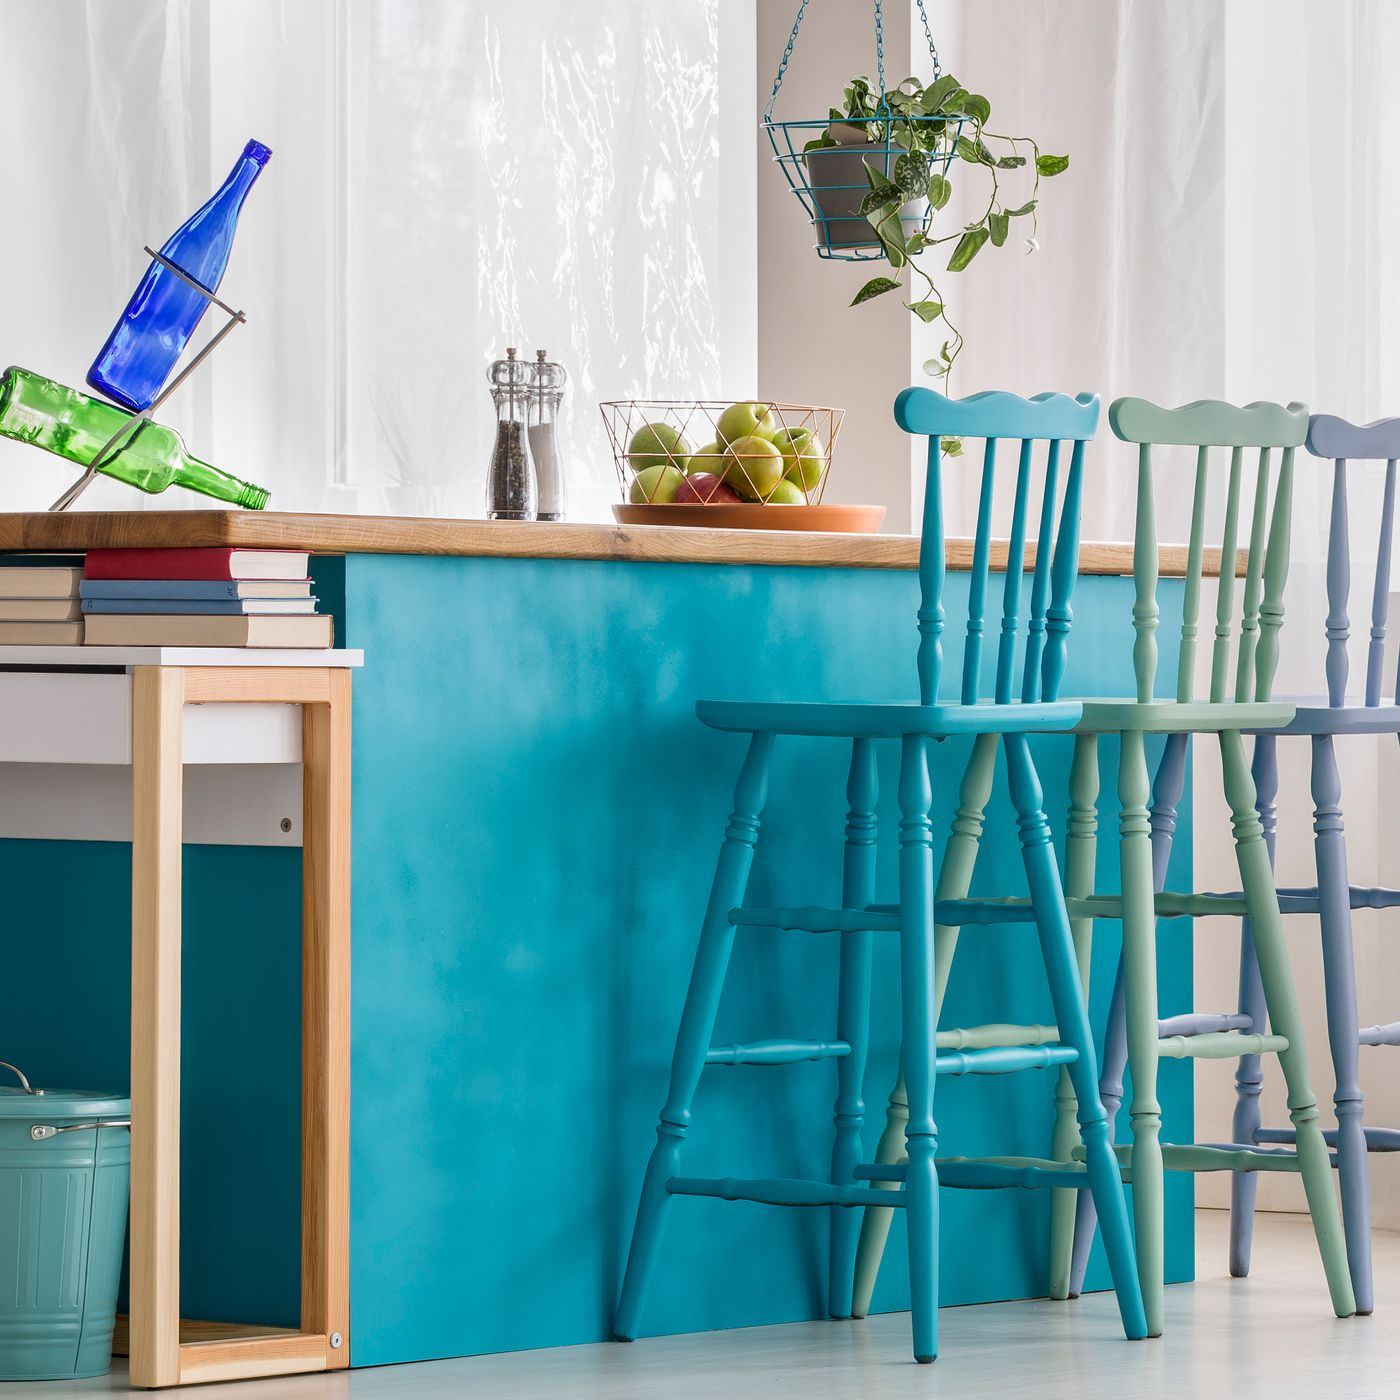 How To Spray Paint Wood Furniture This Old House